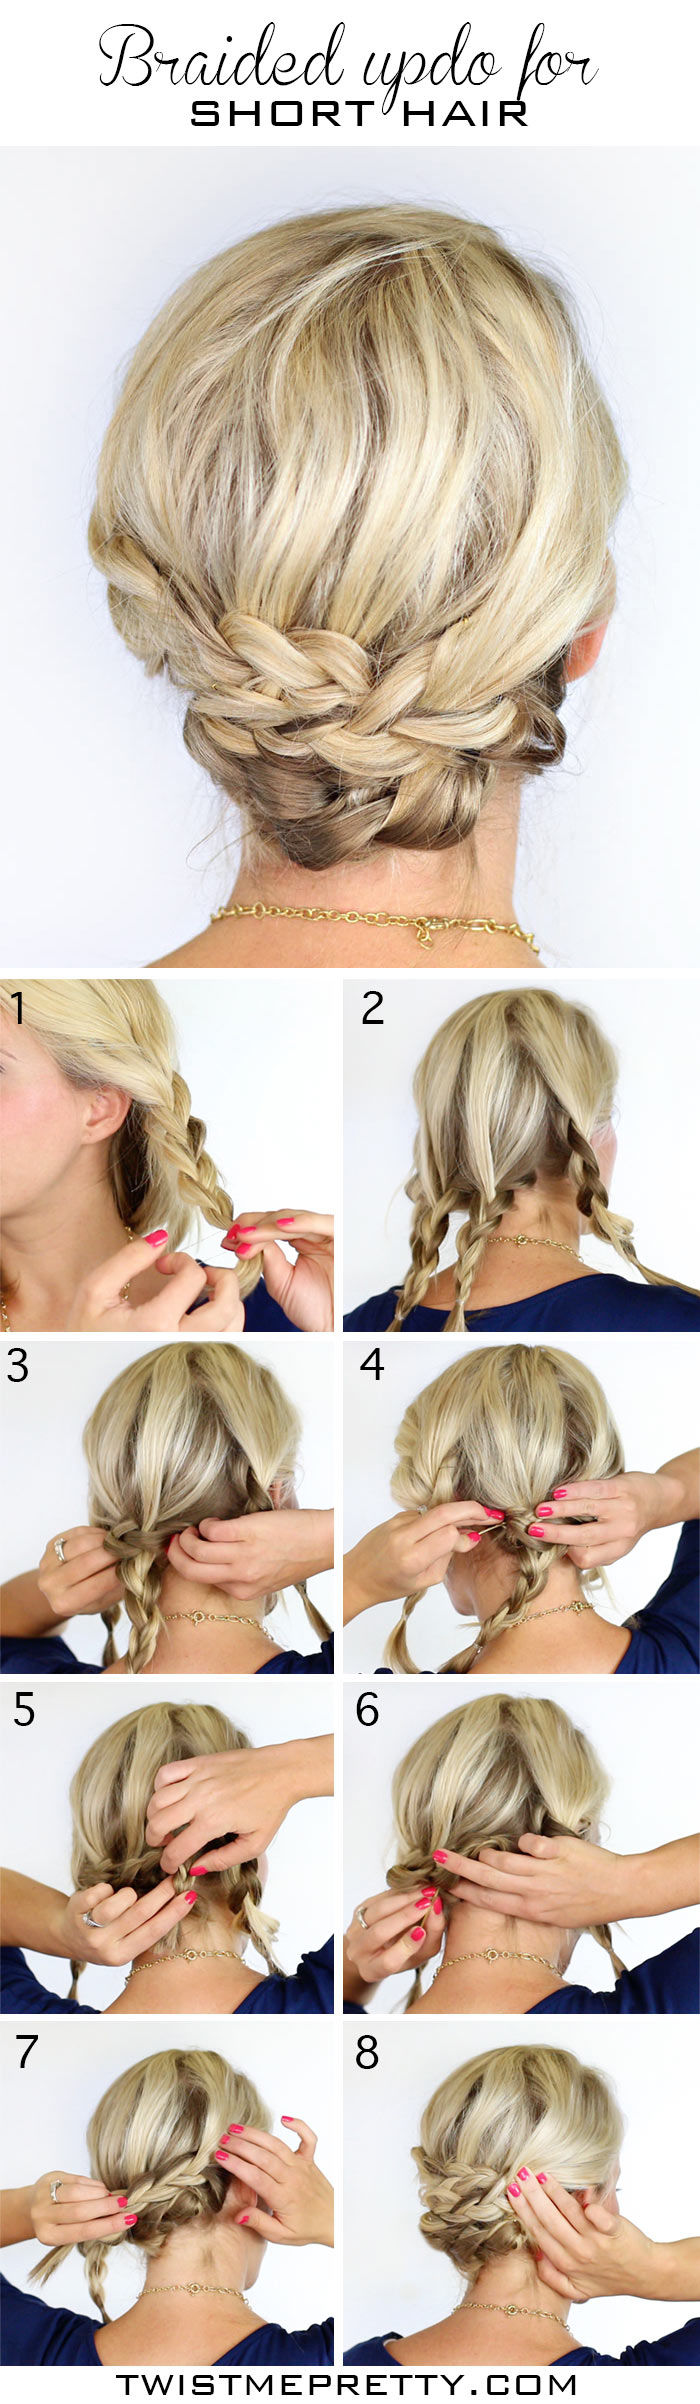 Astounding Braided Updo For Short Hair Pictures Photos And Images For Short Hairstyles Gunalazisus